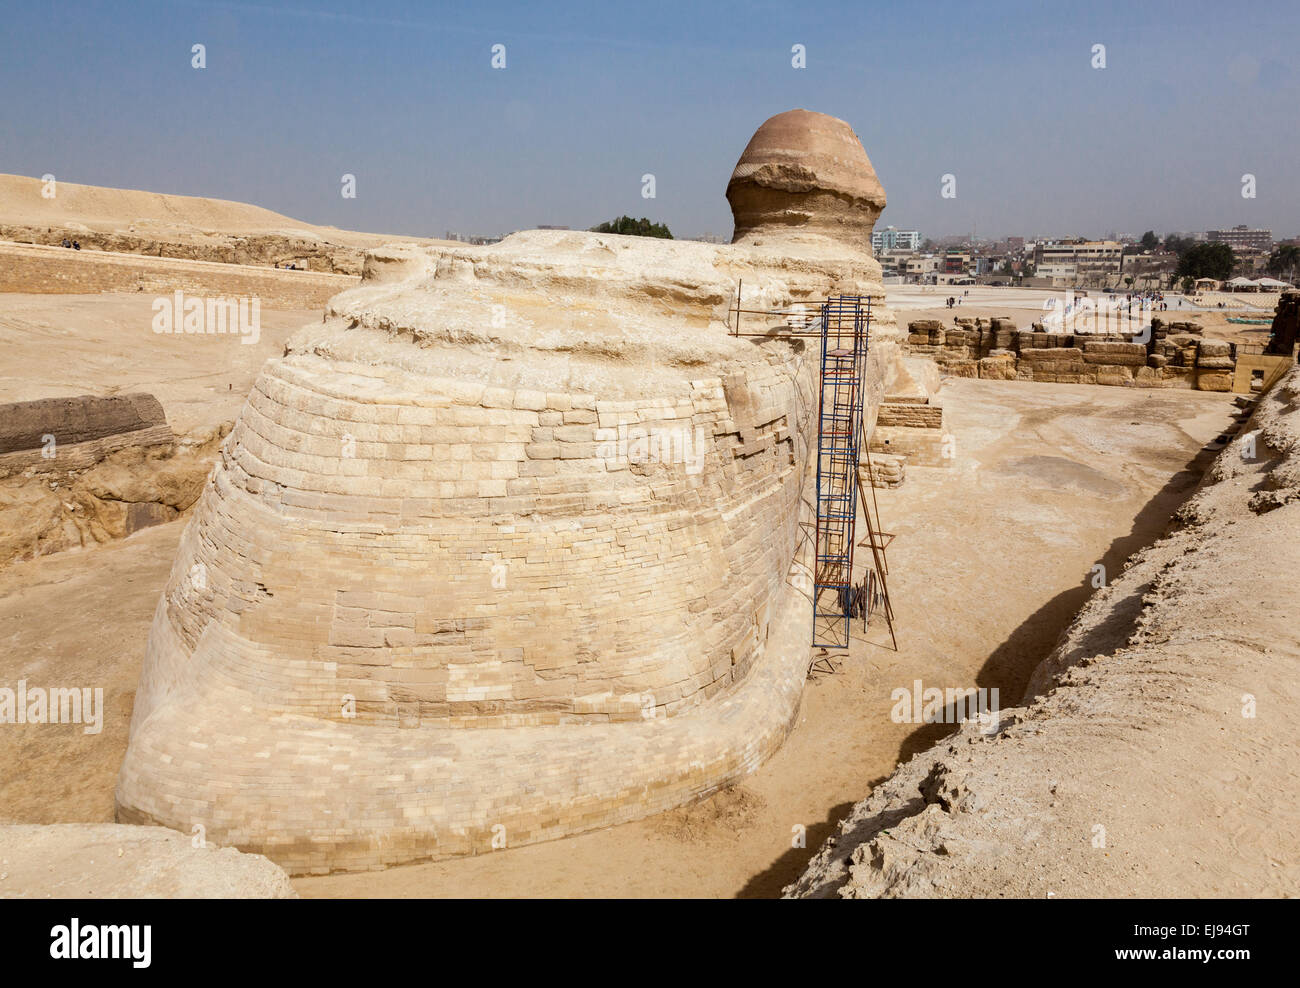 Close up of rear view of Sphinx Cairo - Stock Image